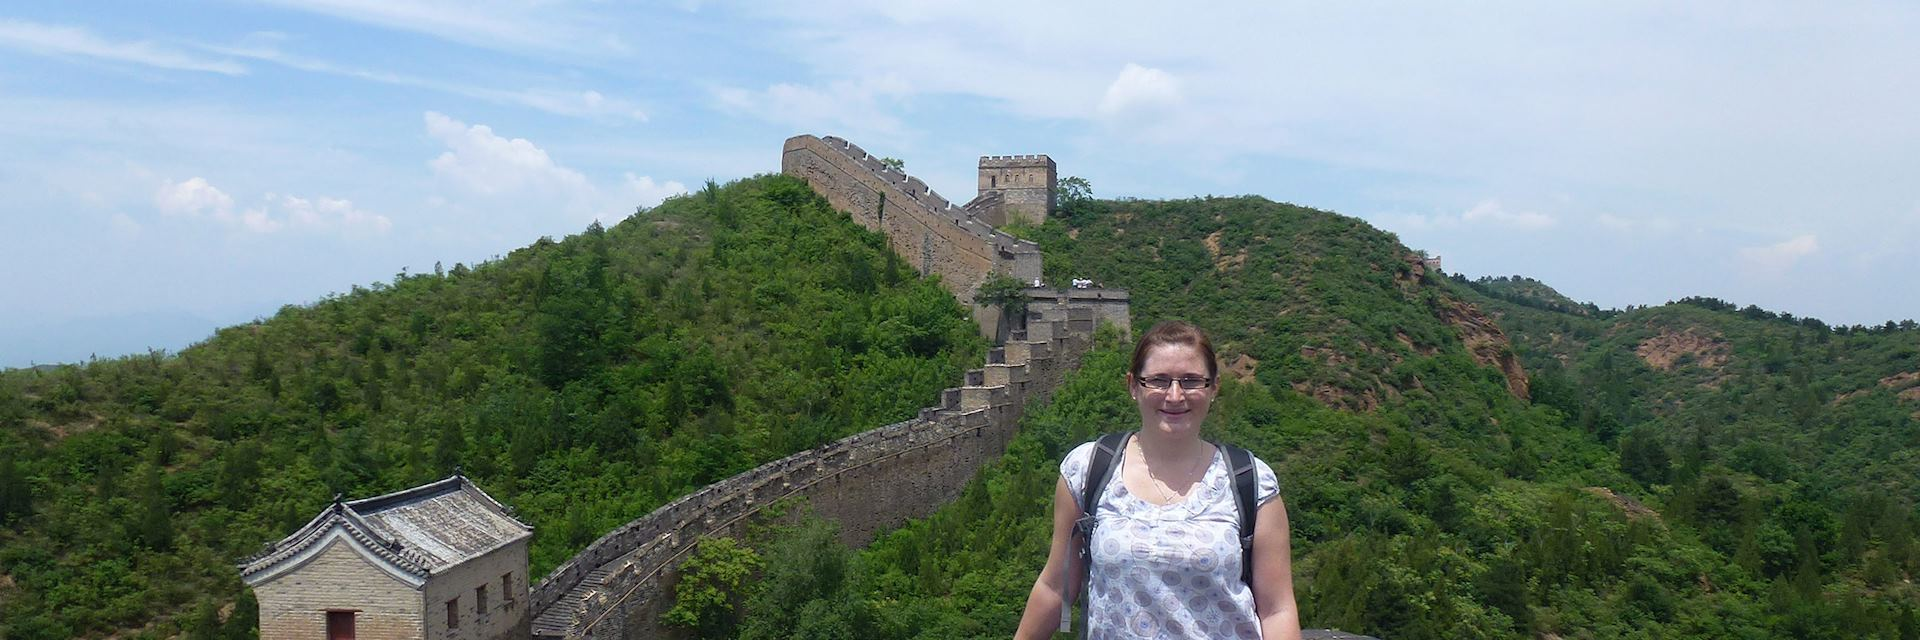 Cheryl enjoying the view from the Great Wall, China